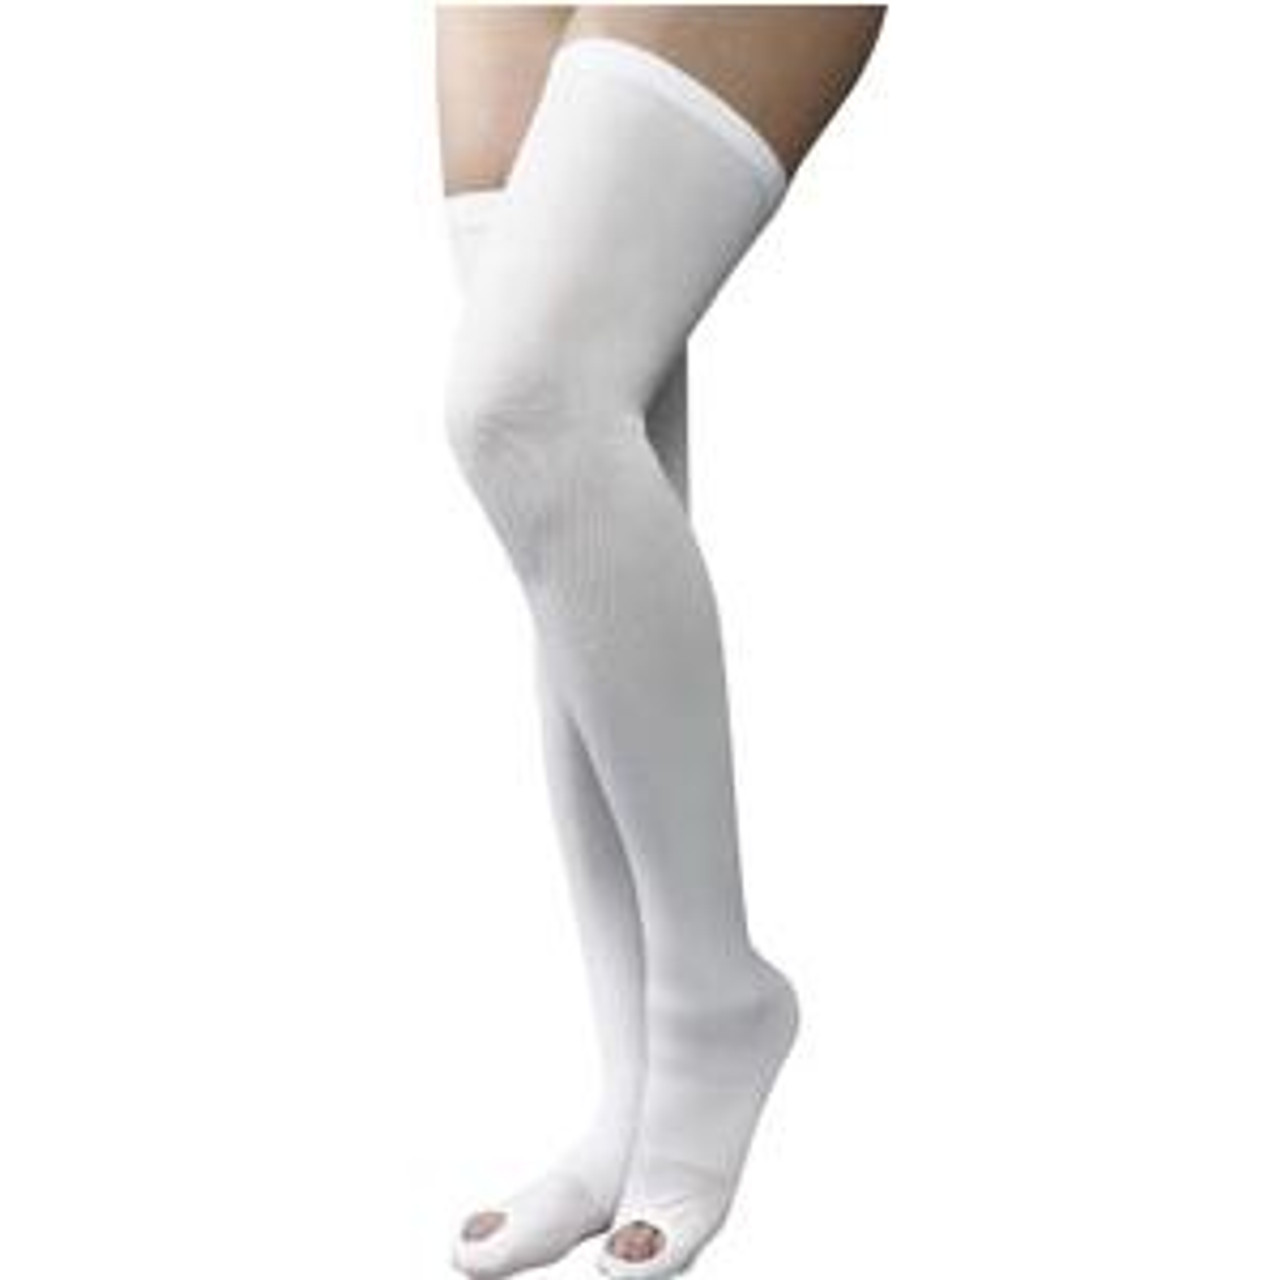 1daac1a2cd Allegiance Compression Stockings, Silicone-Beaded Elastic Band